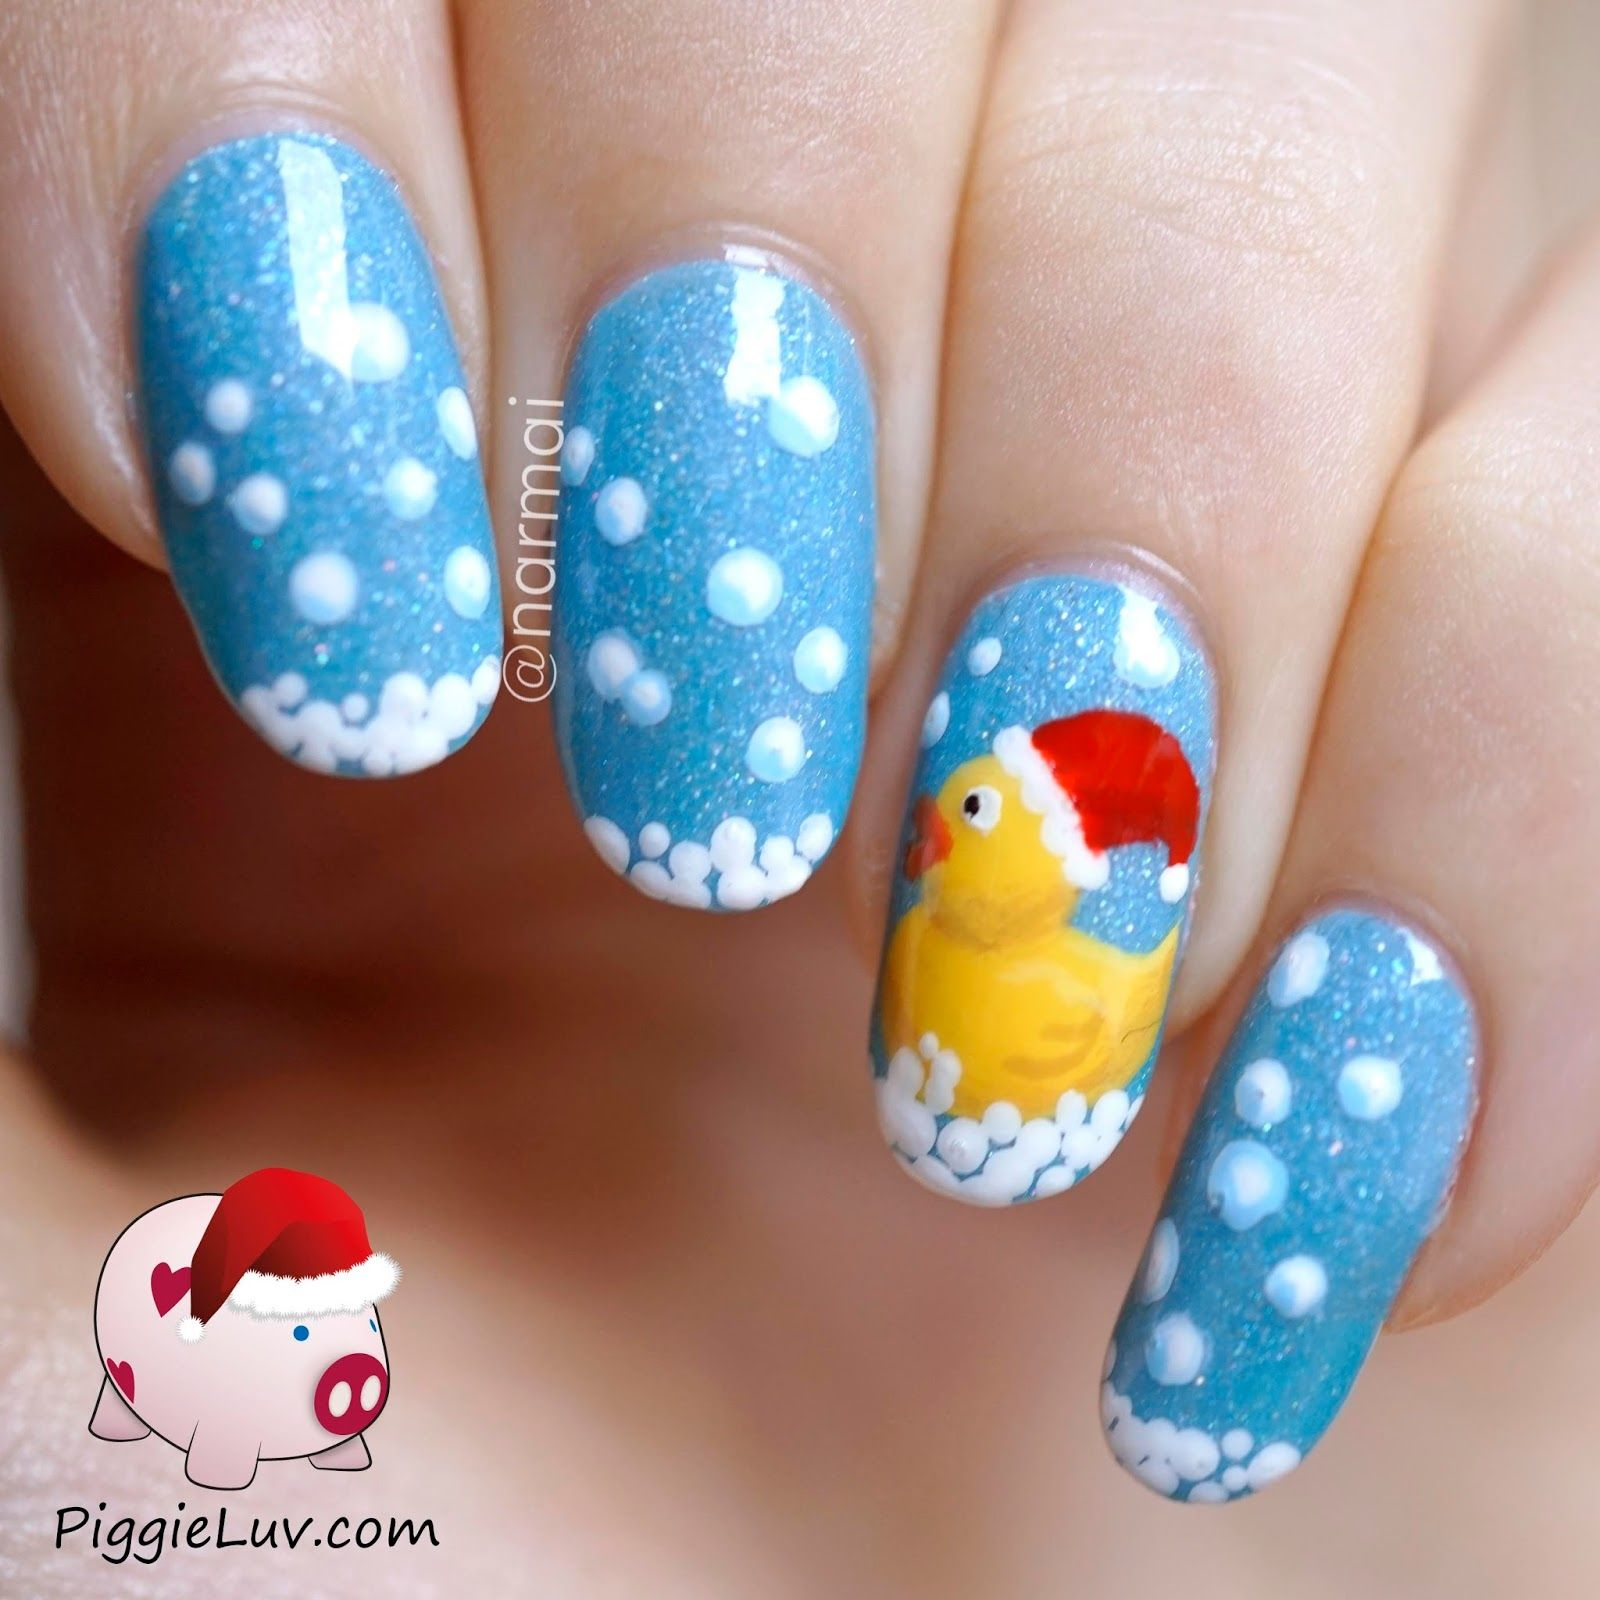 Piggieluv Rainbow Bubbles Nail Art: Rubber Ducky Nail Art With Santa Hat For Christmas